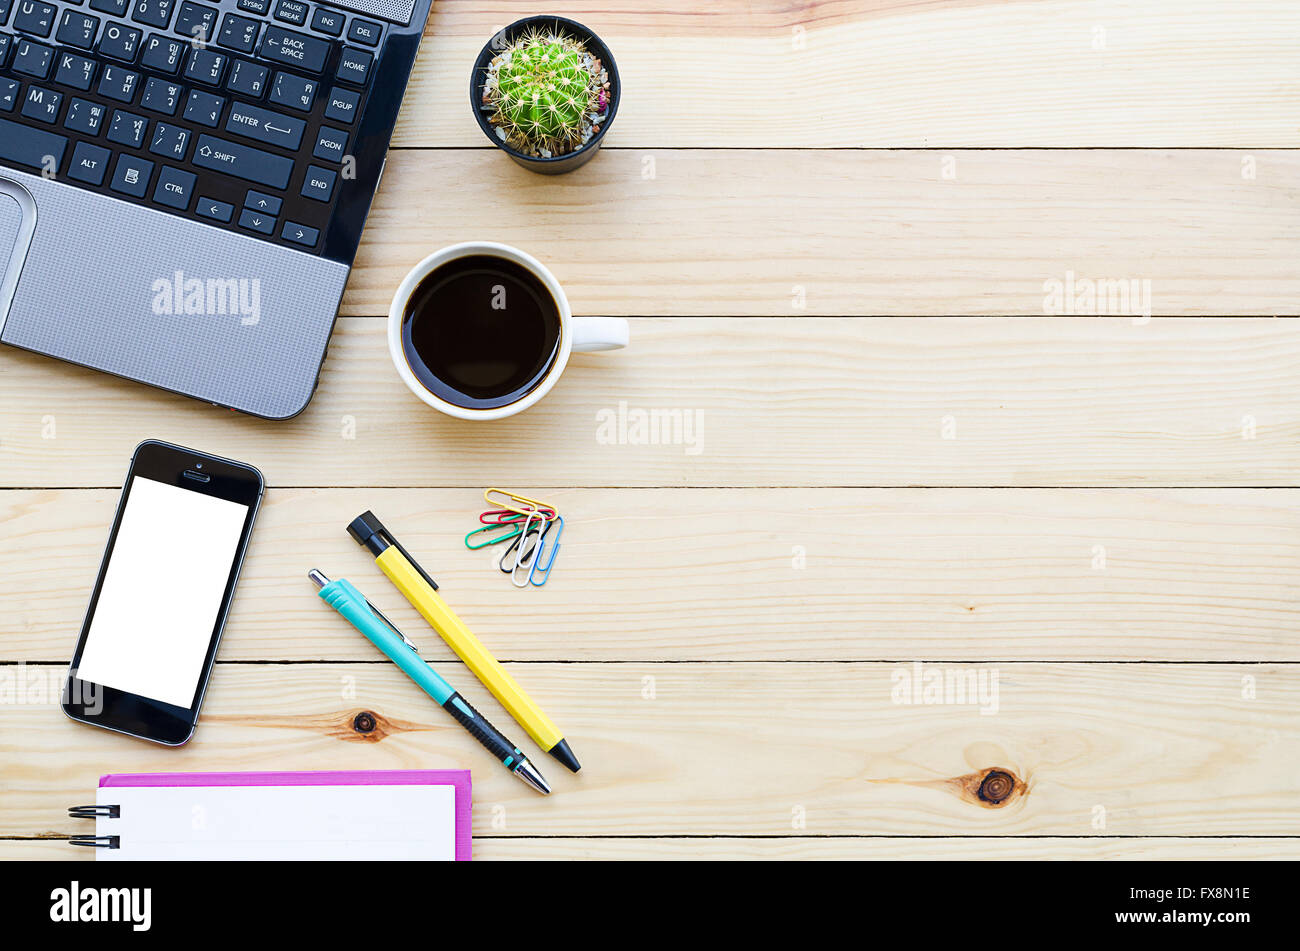 https www alamy com stock photo office desk table with laptopsmartphone coffee cup penpencil and notebooktop 102225018 html